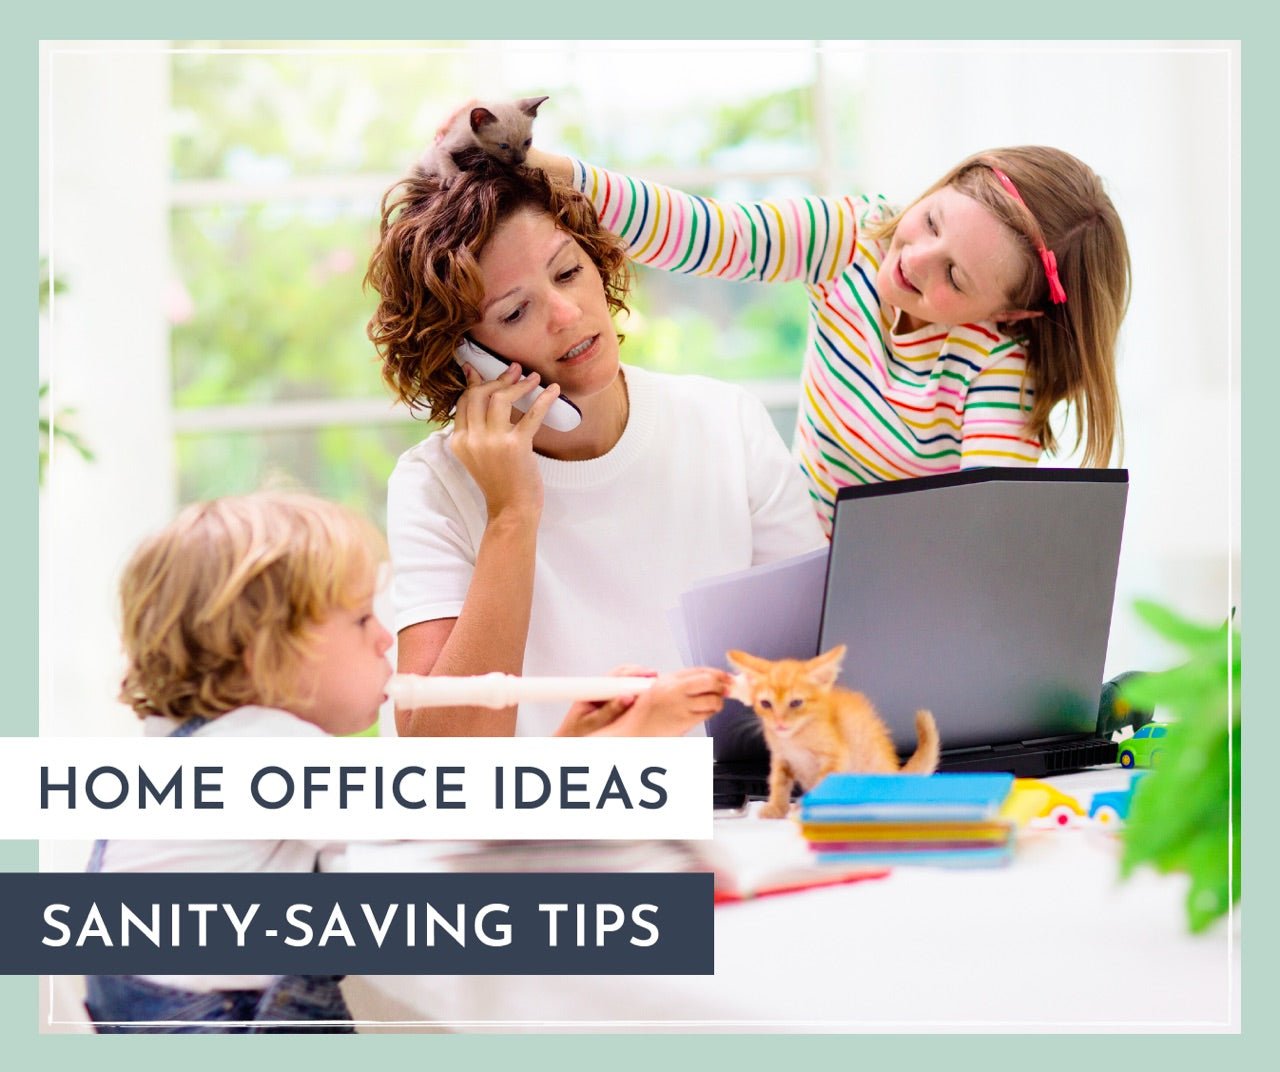 Home Office Ideas: Sanity-Saving Tips